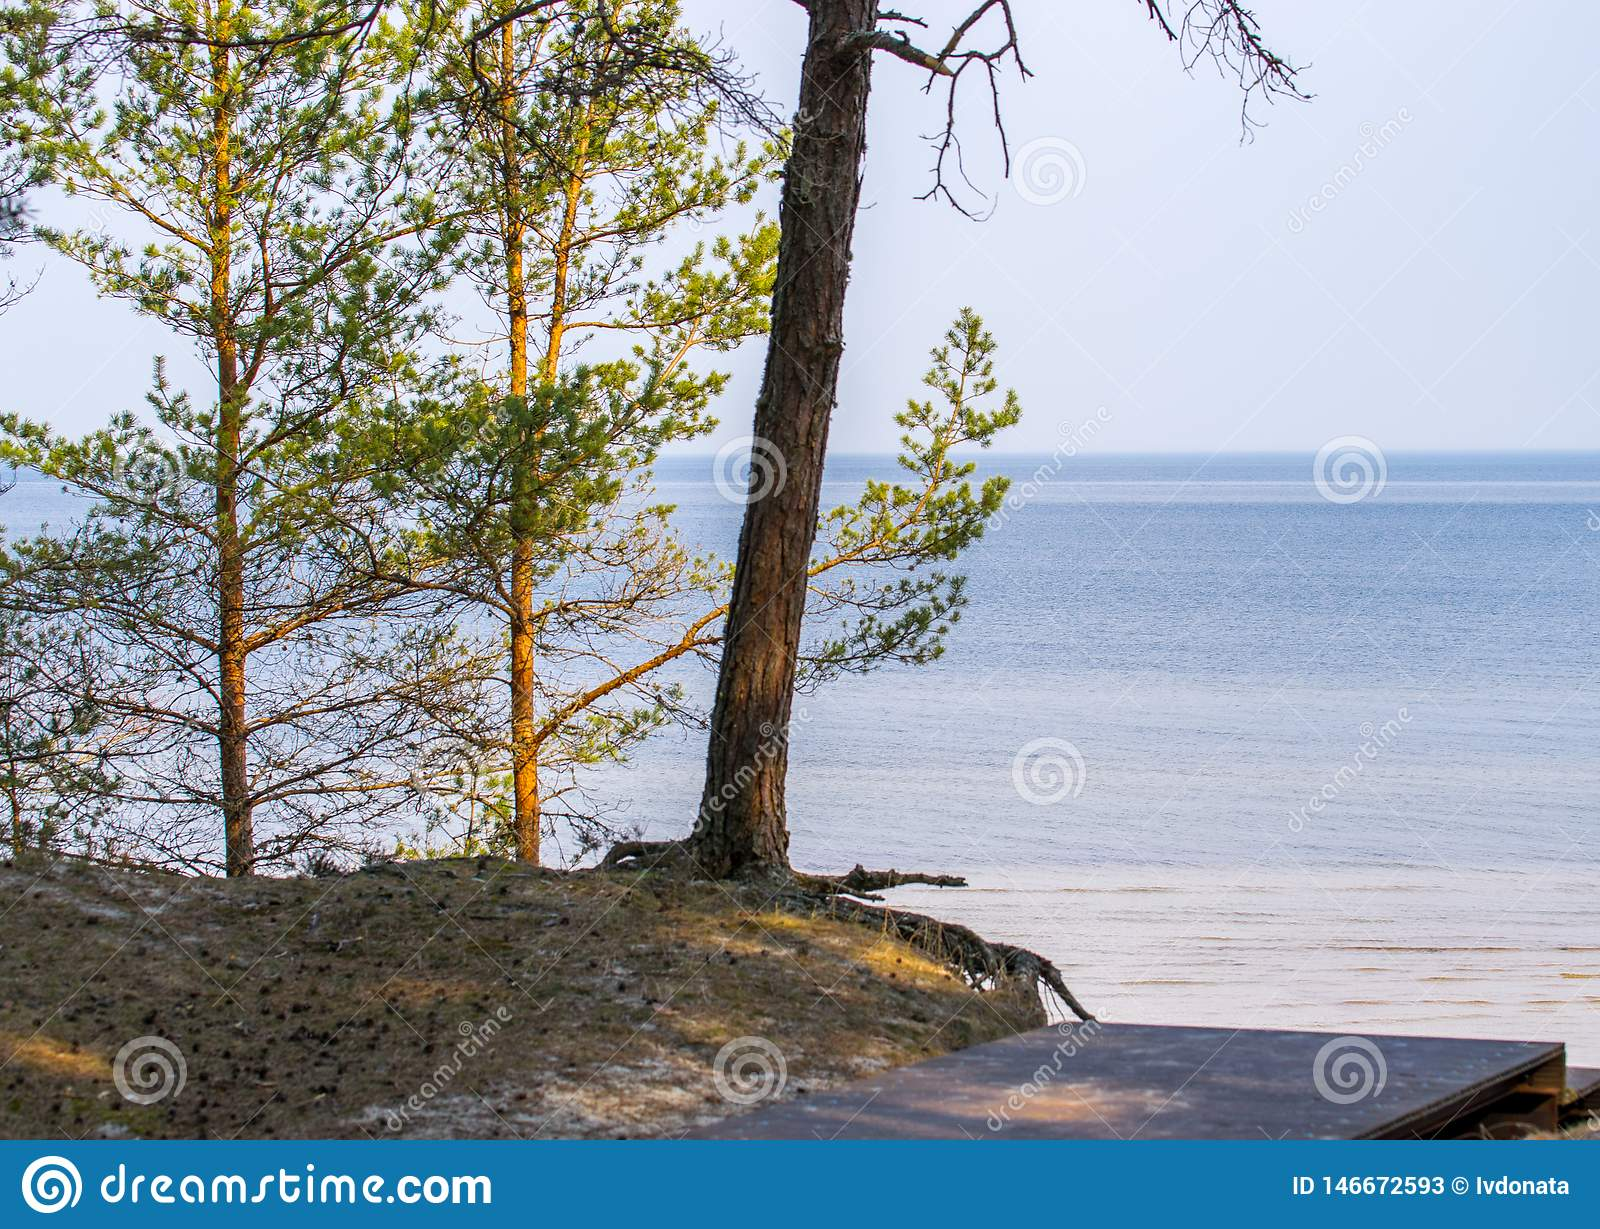 Wooden walkway leading to the sea through a pine forest